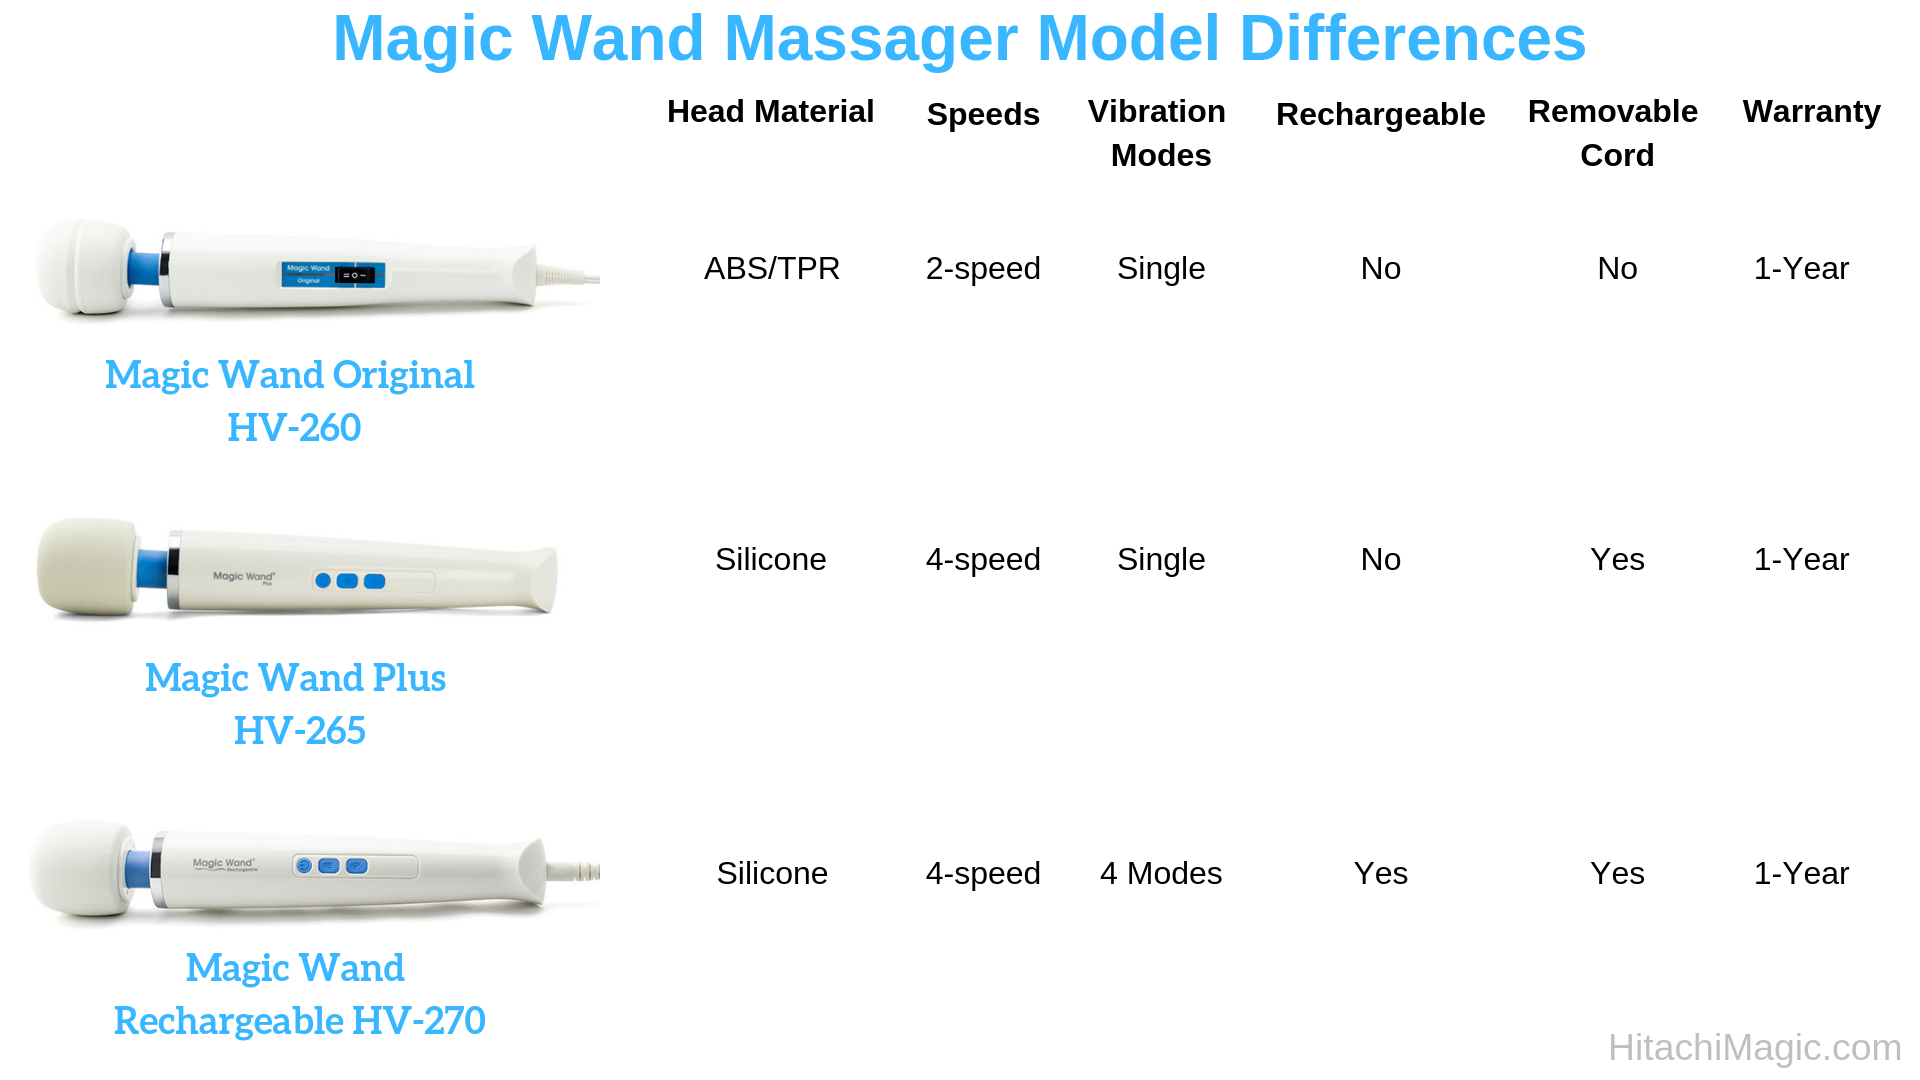 Magic Wand Massager Differences